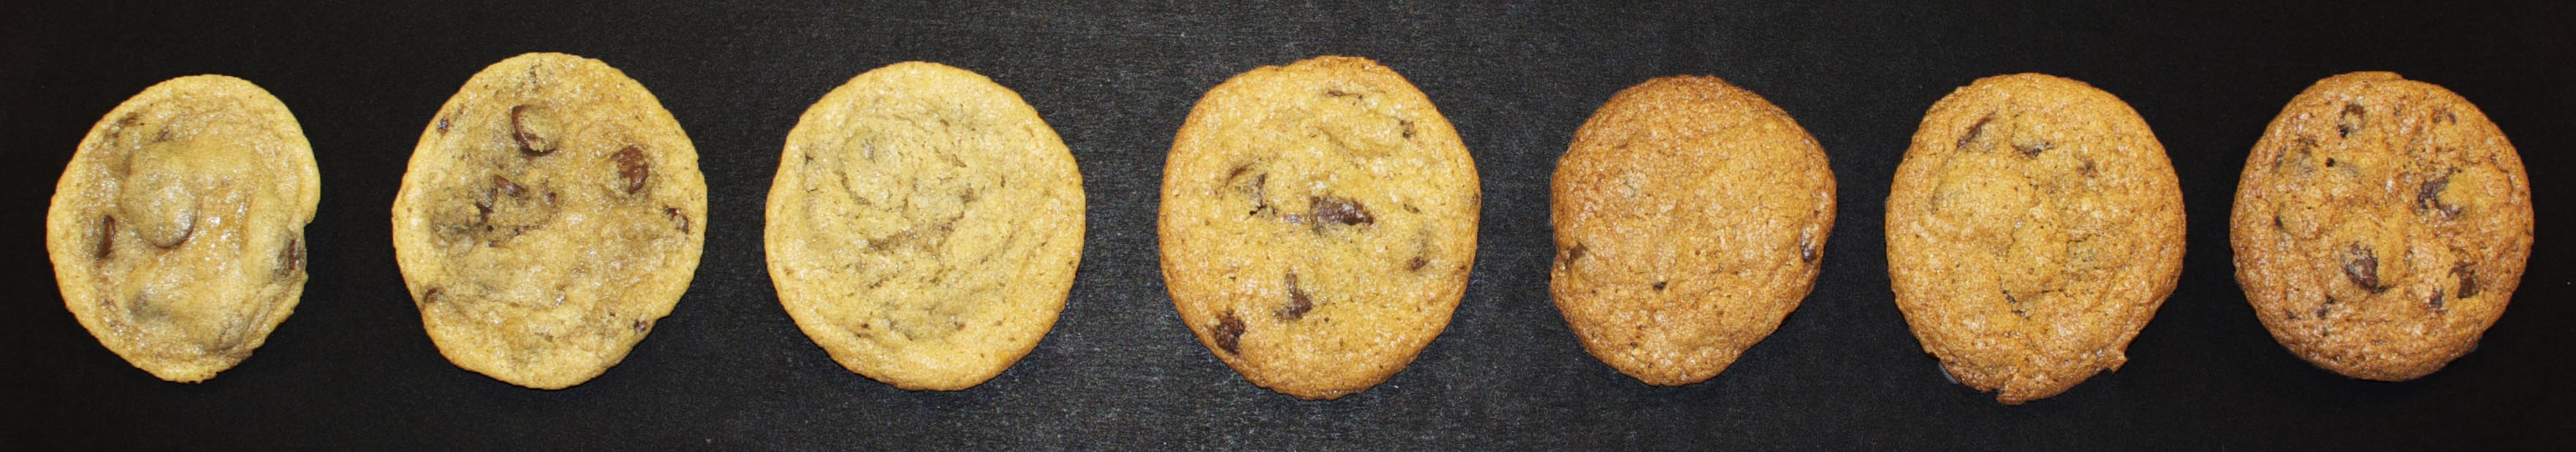 cookies 350 6 to 18 minutes